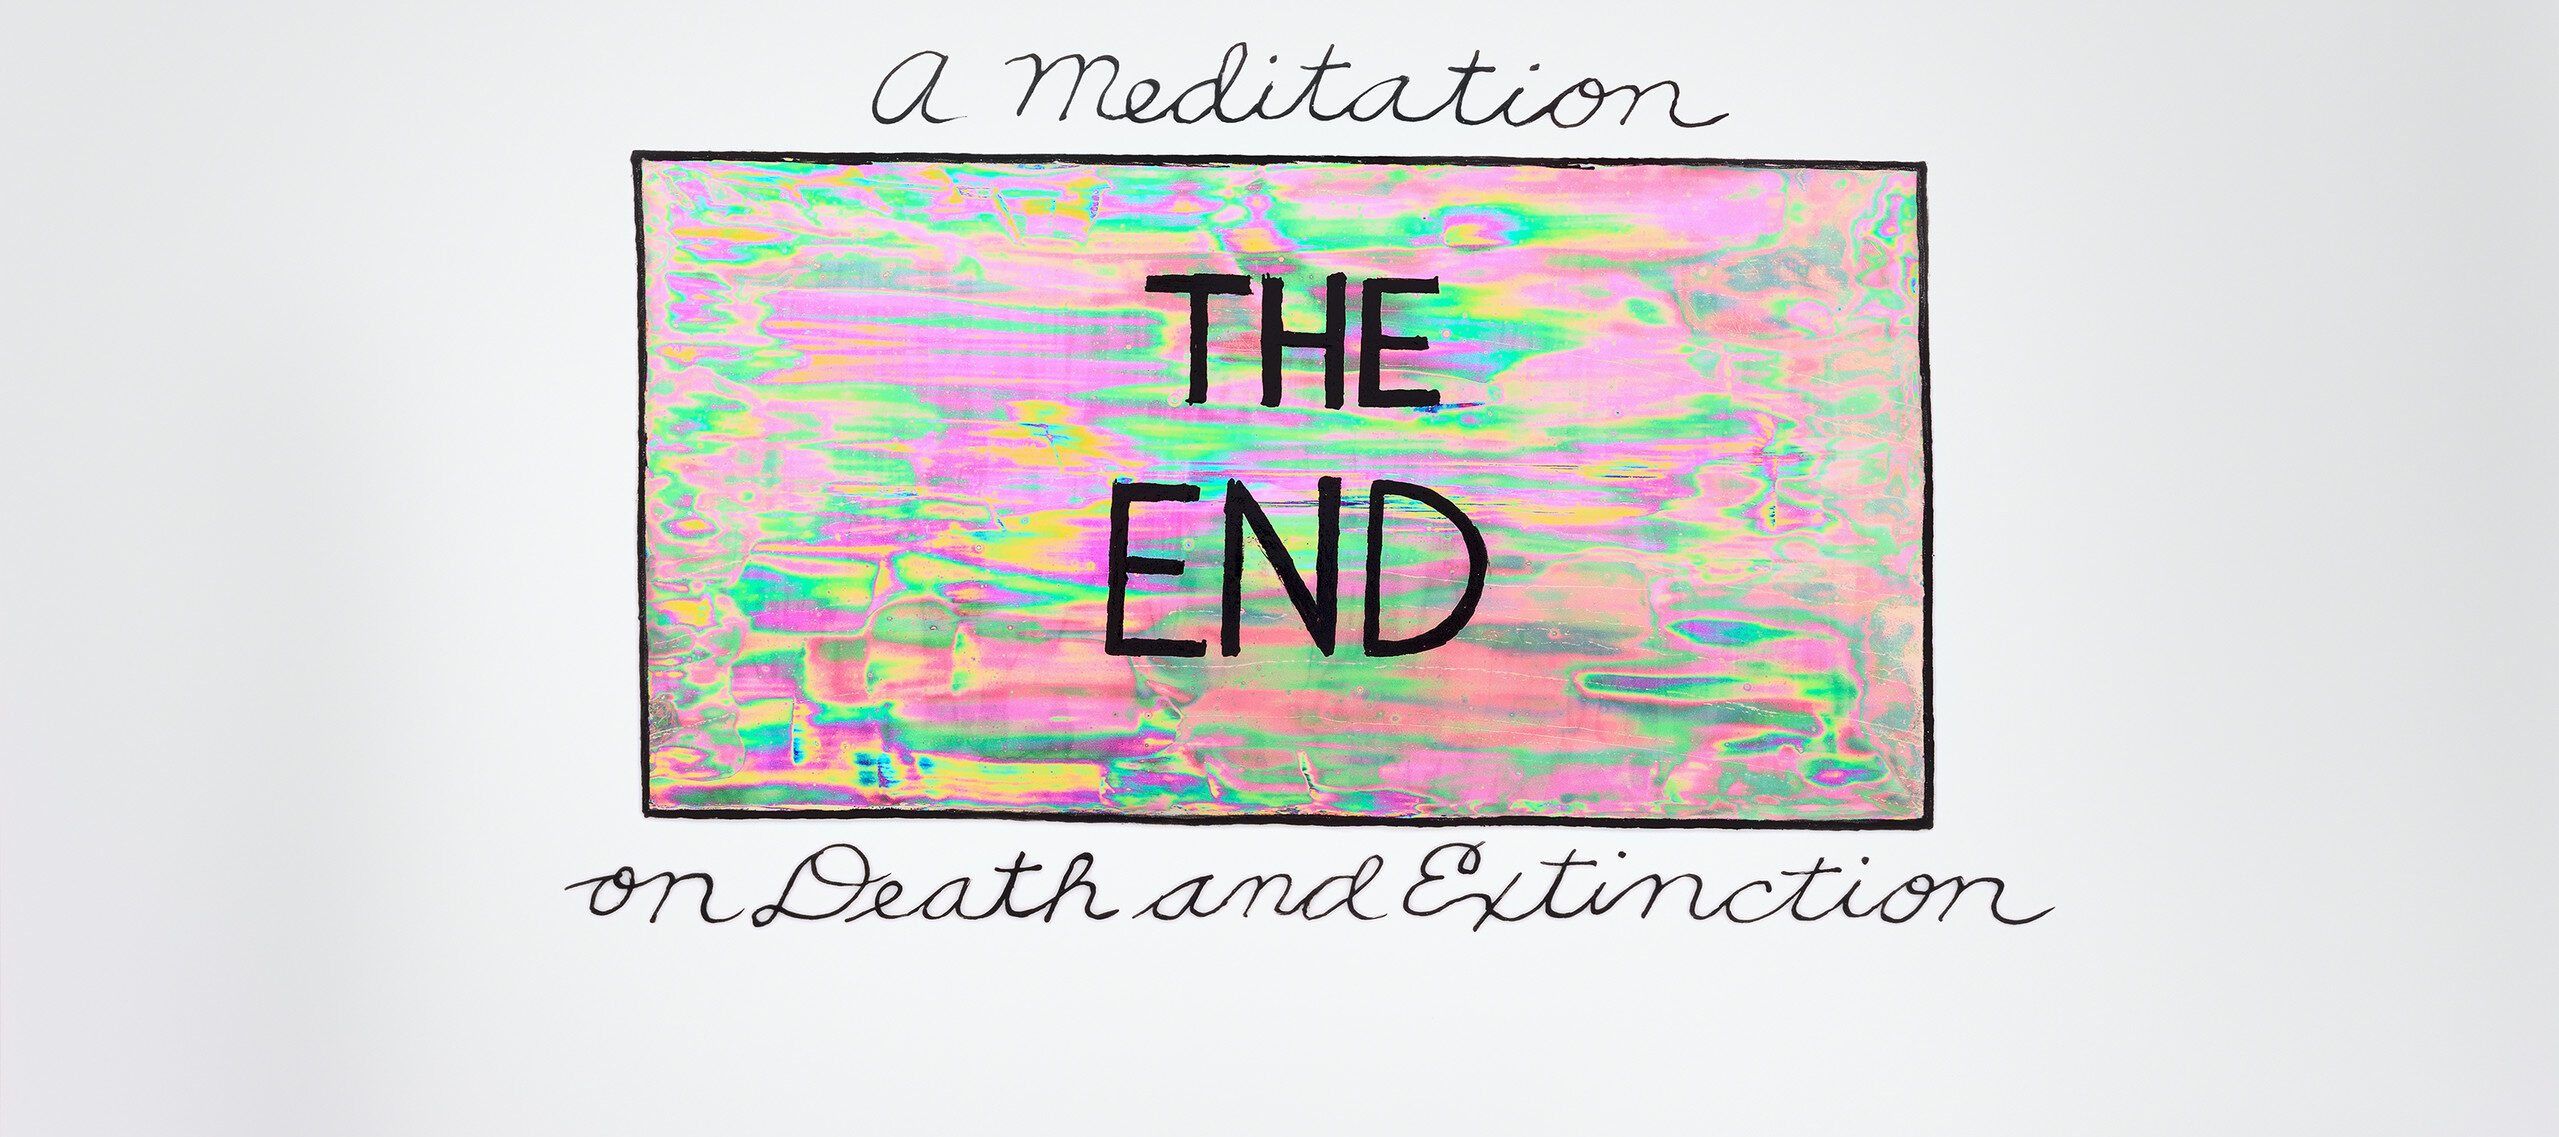 The words 'The End' in bold, uppercase print is shown in an iridescent box of pinks and greens with a solid black border. 'A meditation' sits atop of the box in cursive writing and 'on Death and Extinction' sits below in the same lettering.